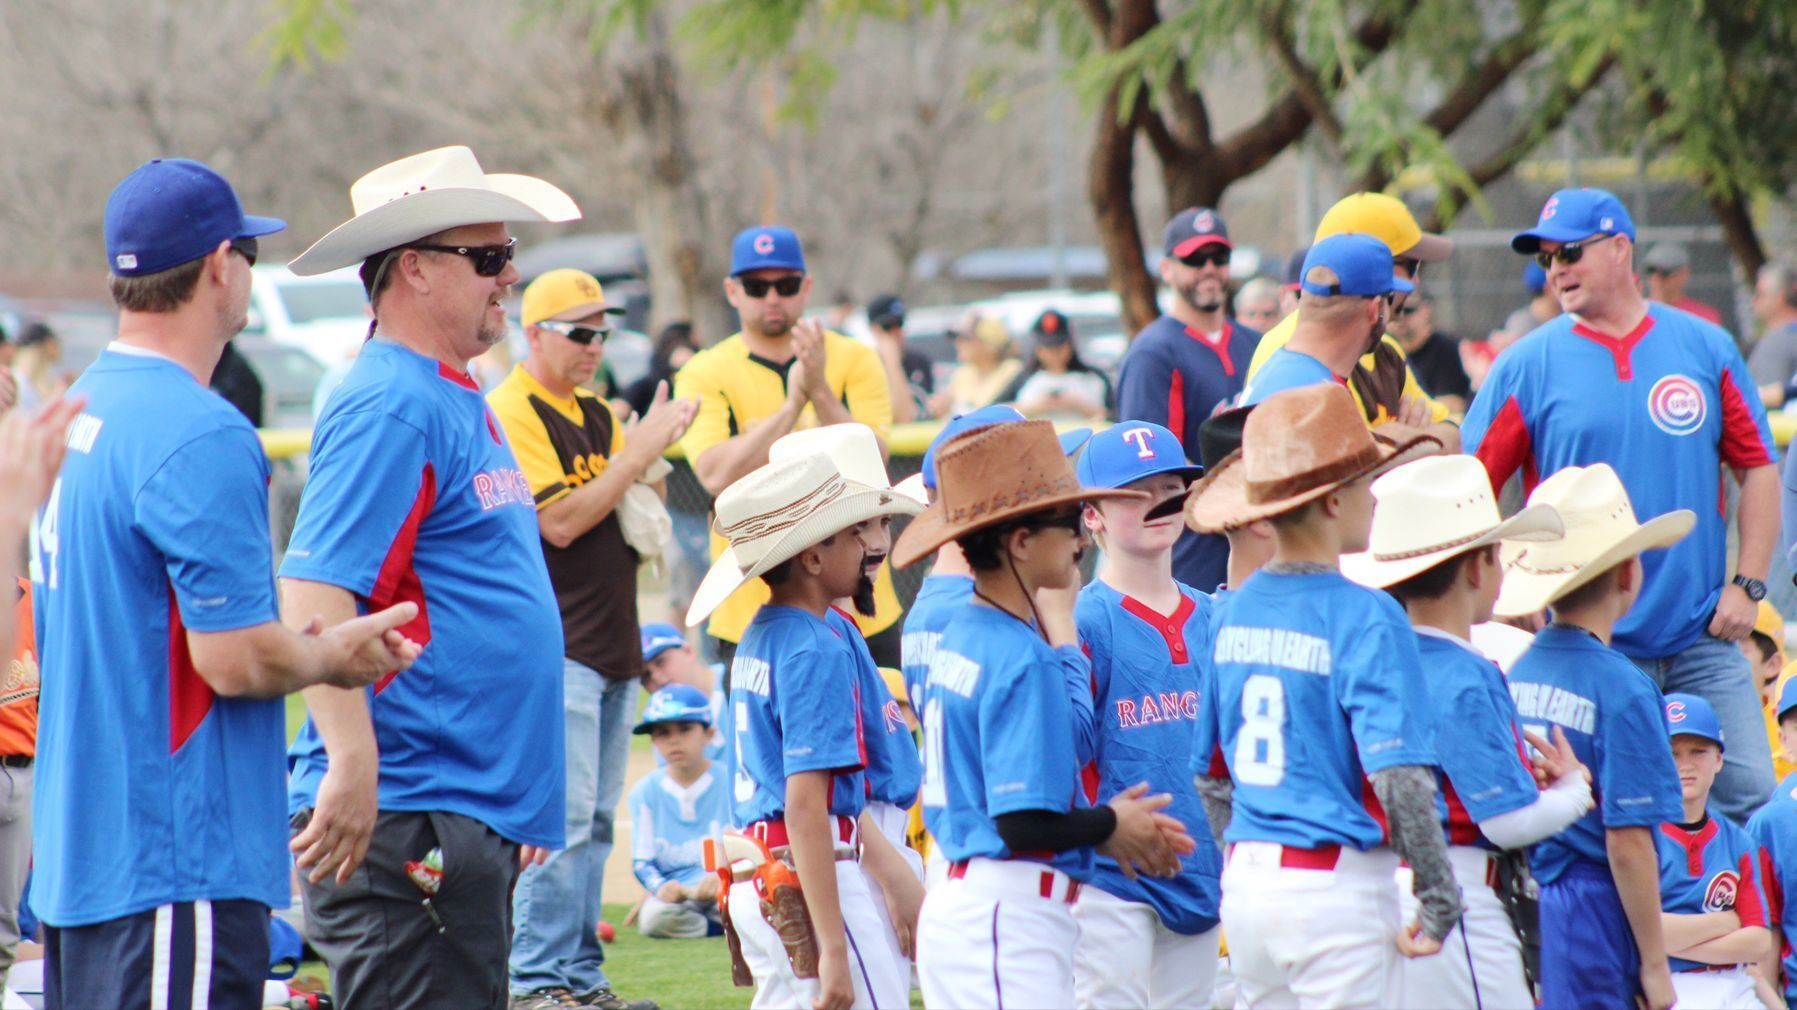 Sporting cowboy hats, Mustang division players make their presence known as the Texas Rangers during opening day ceremonies March 4.